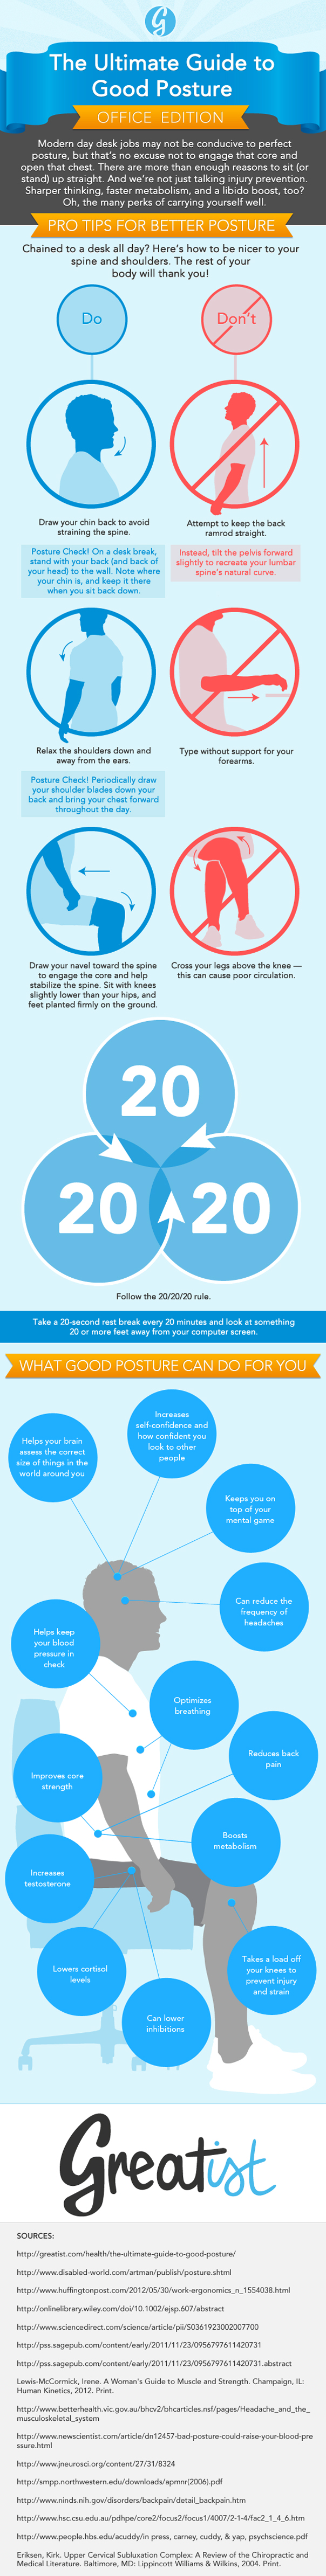 tricks to improve posture at work